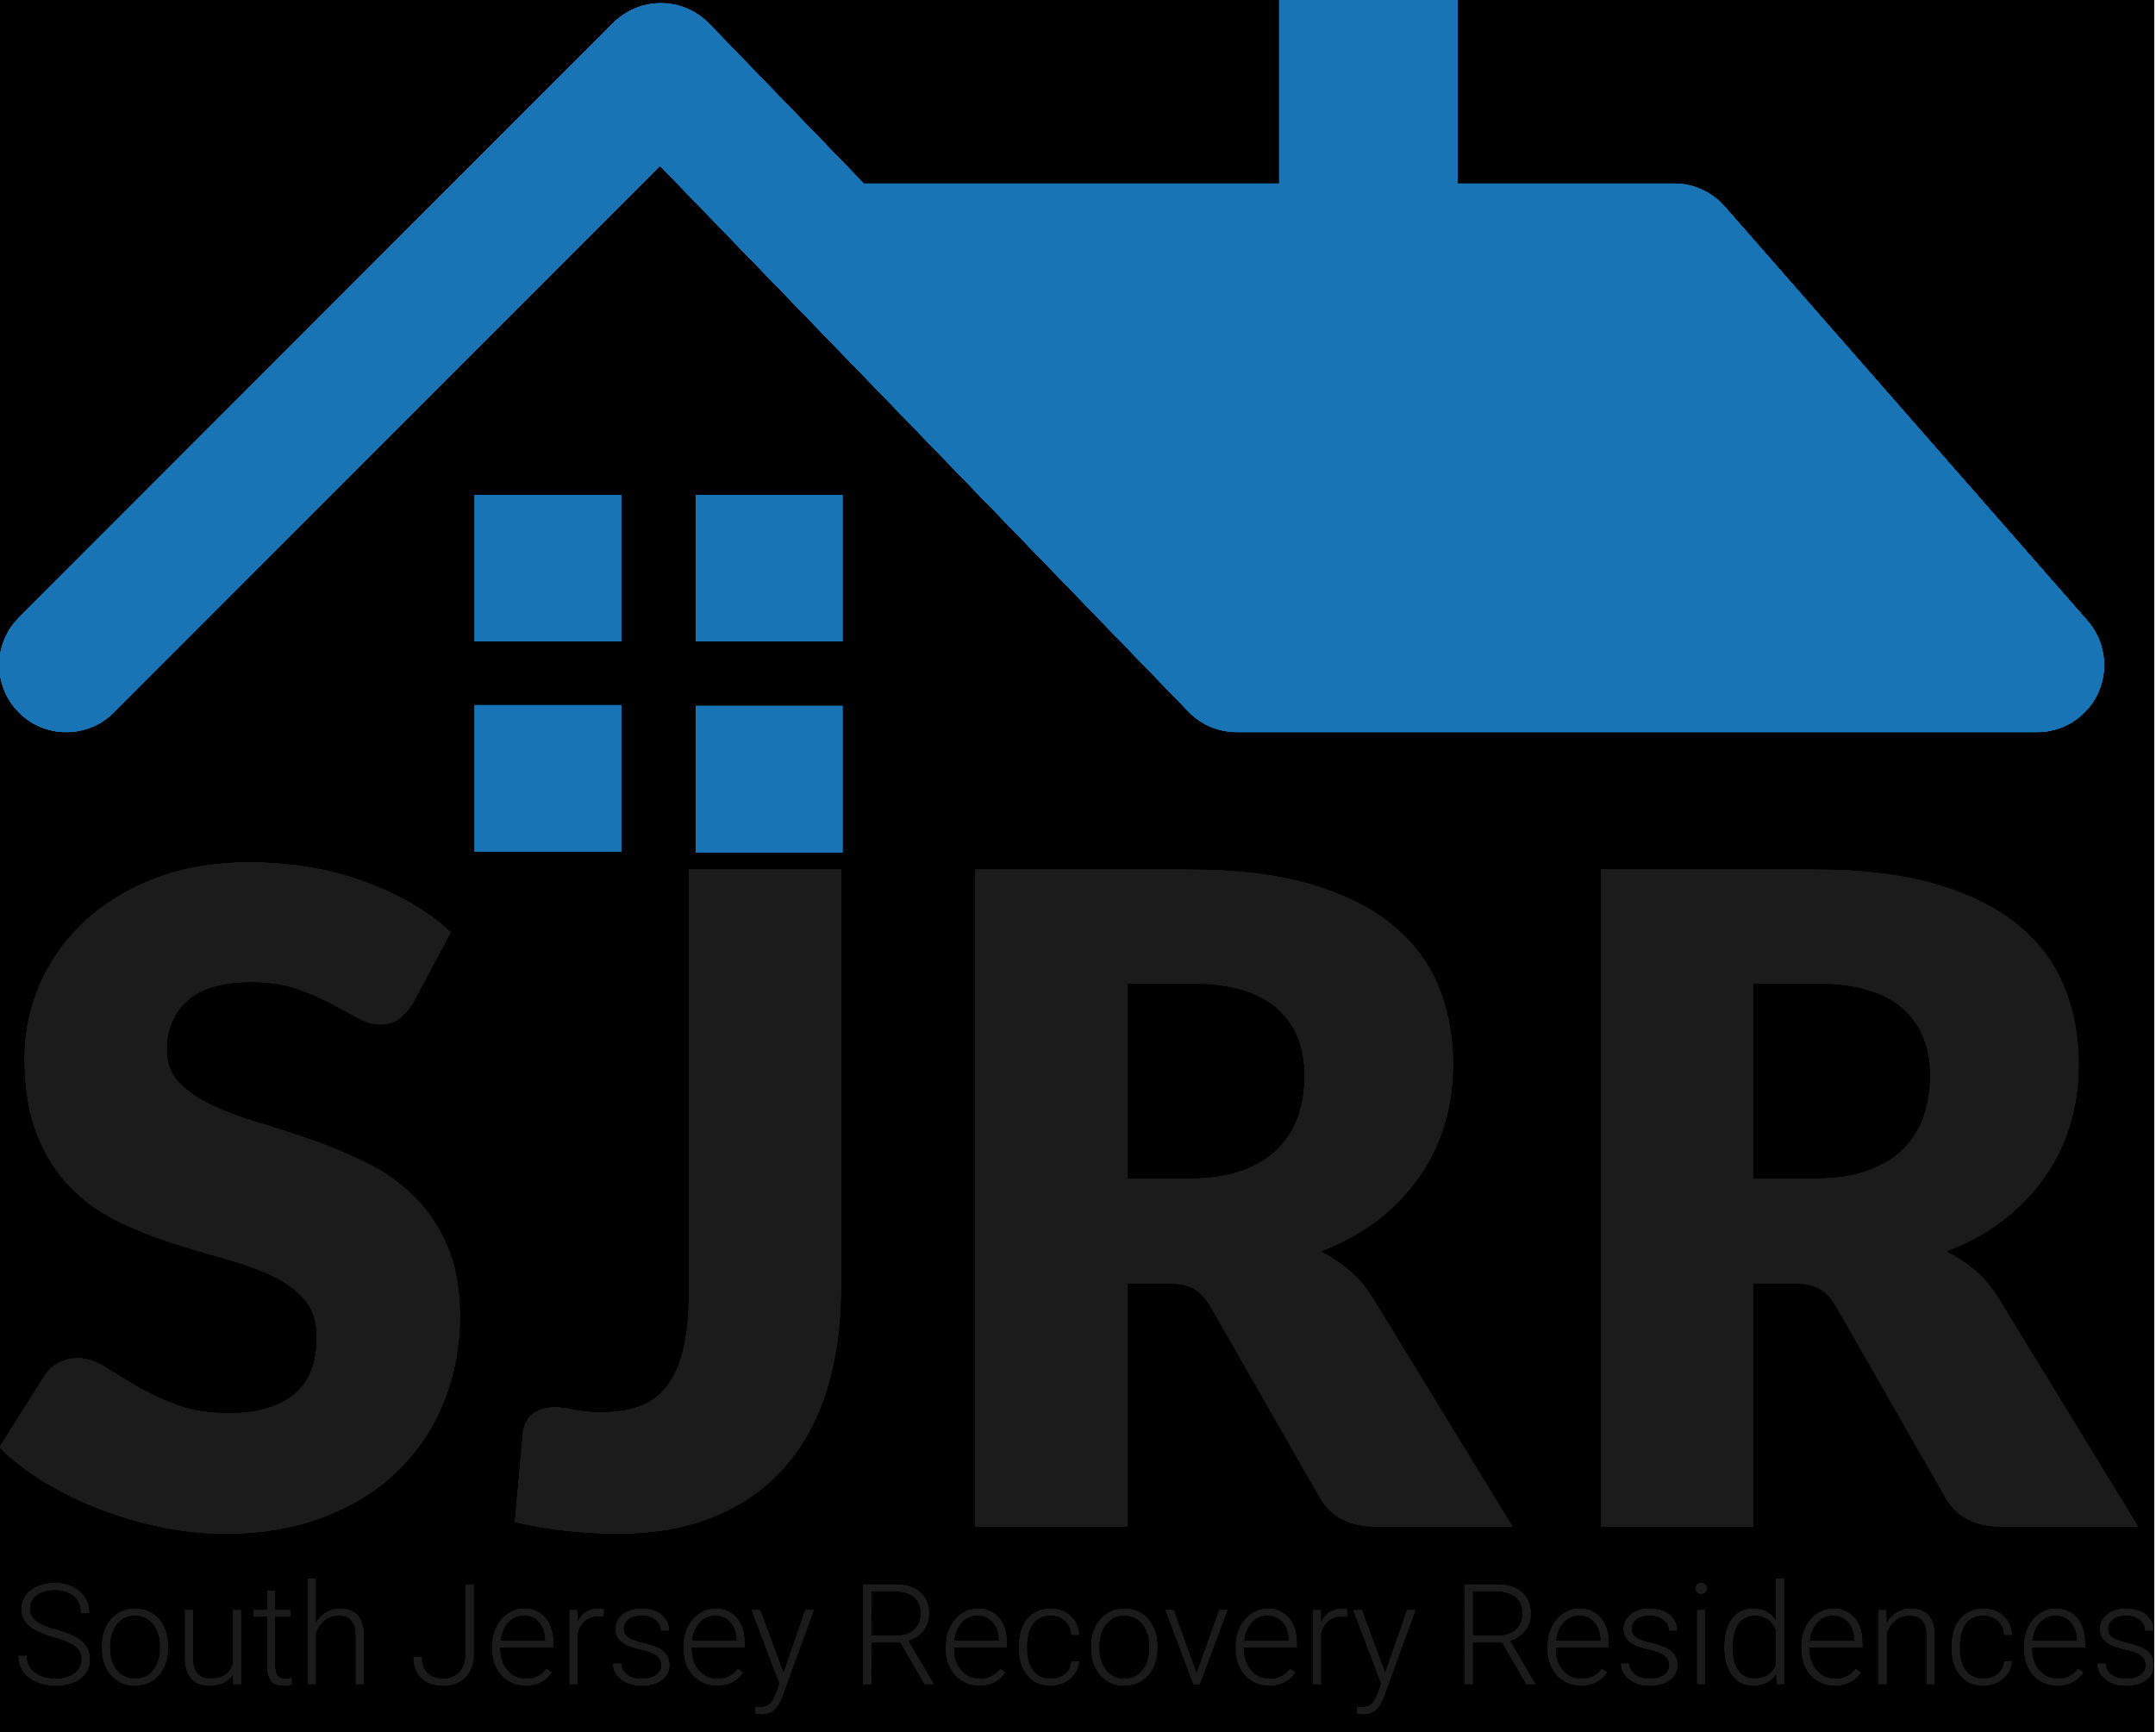 South Jersey Recovery Residences Abbey Road House Blackwood New Jersey